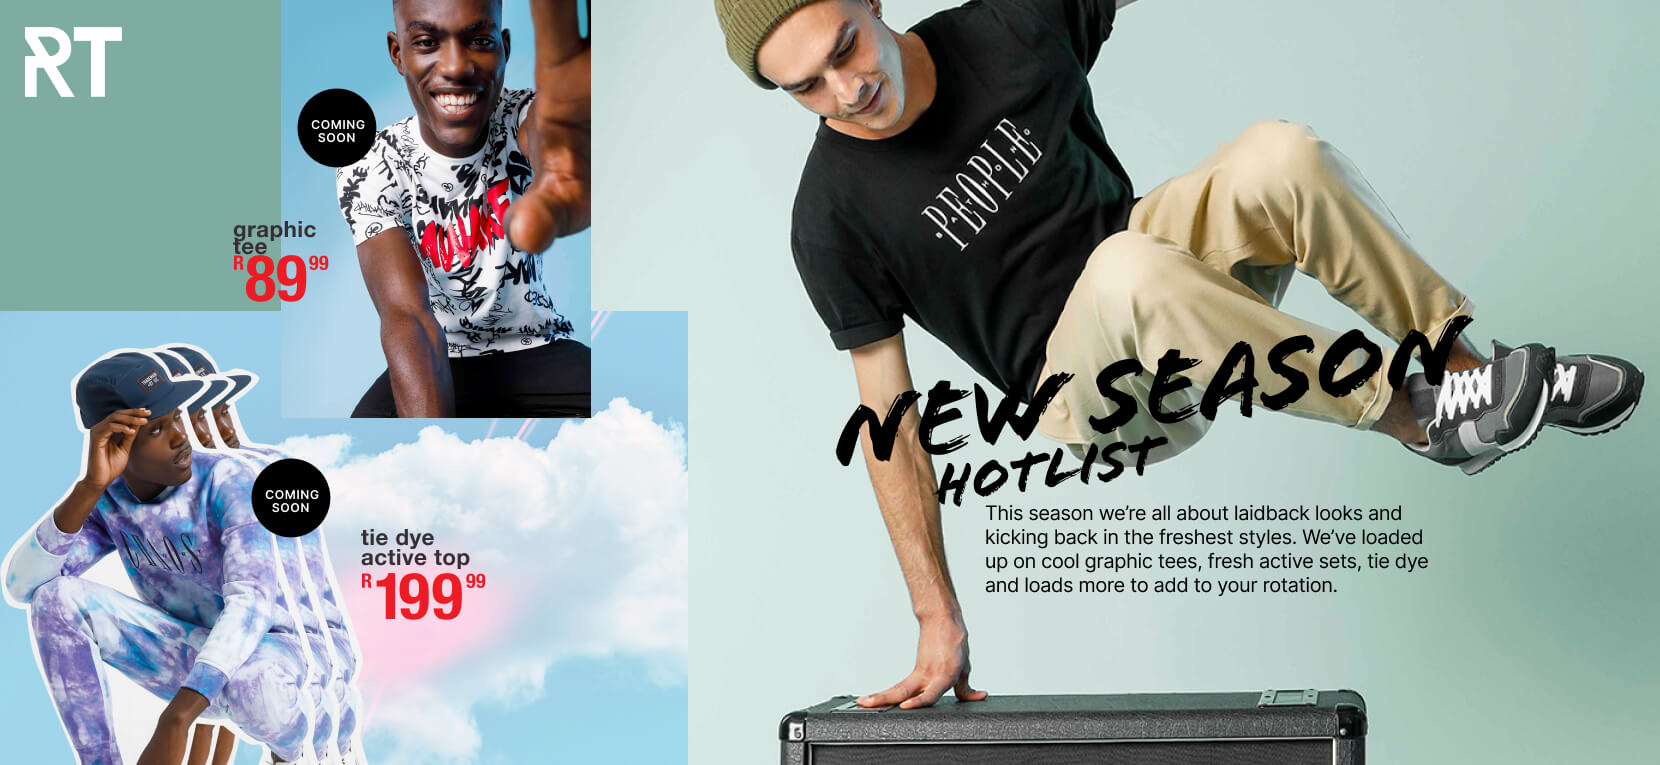 We're letting our latest drops do all the talking, with all new-new 'fits to get you on top of your drip game. Check out our tees in the hottest prints, bold accessories and more.